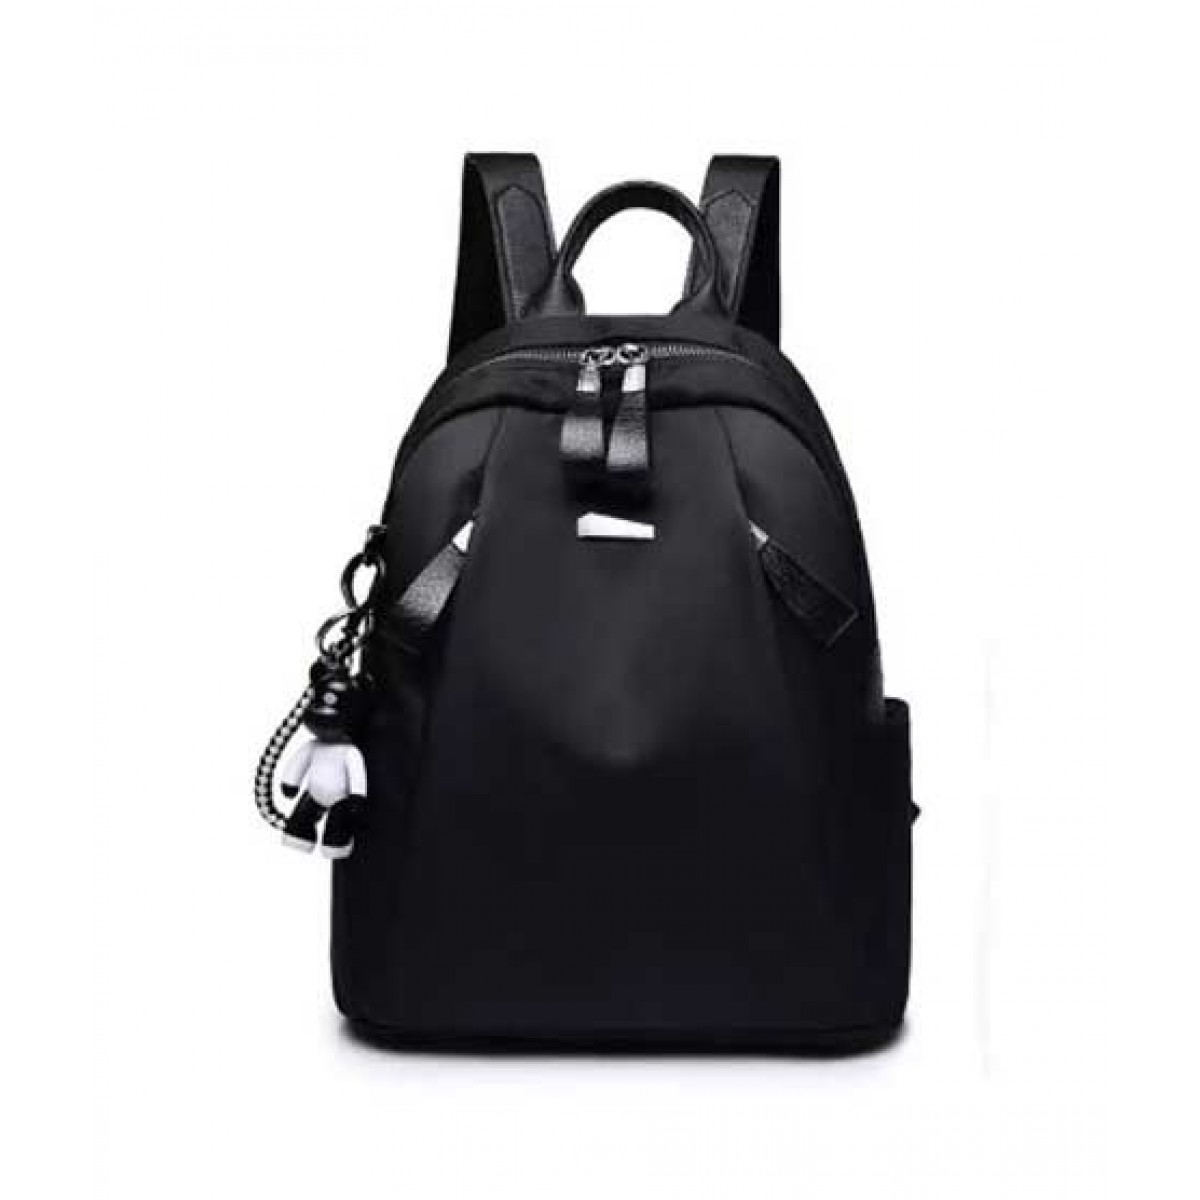 Saad Collection Luxury Drawstring College Bag For Women Black